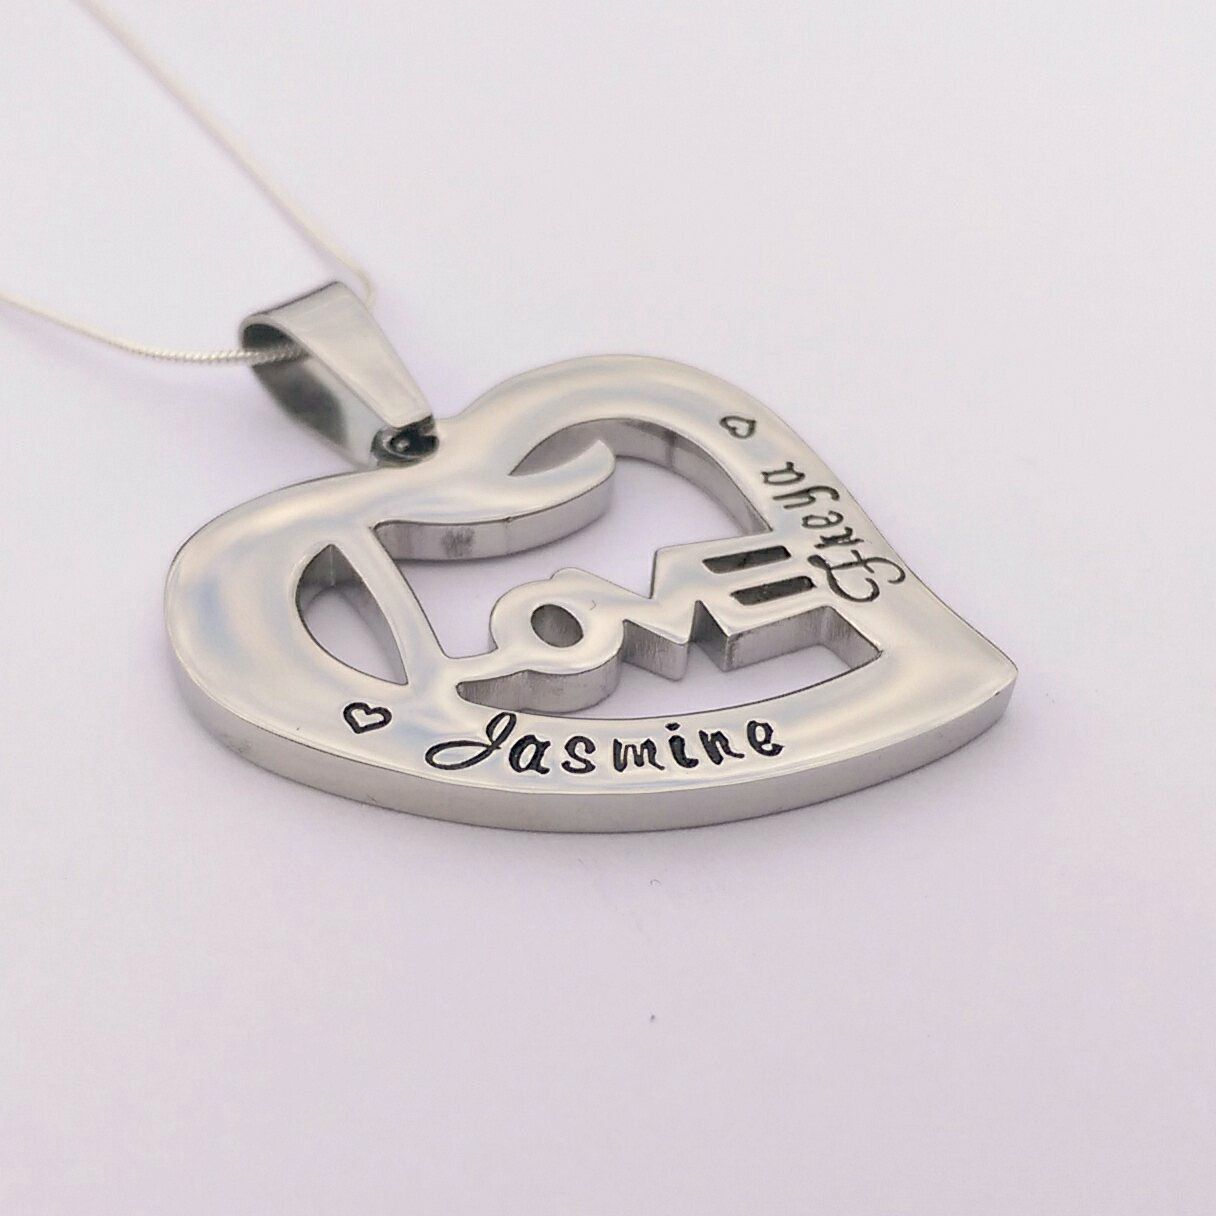 Personalised heart love necklace personalized heart necklace personalised heart love necklace personalized heart necklace name necklace heart pendant mum aloadofball Image collections